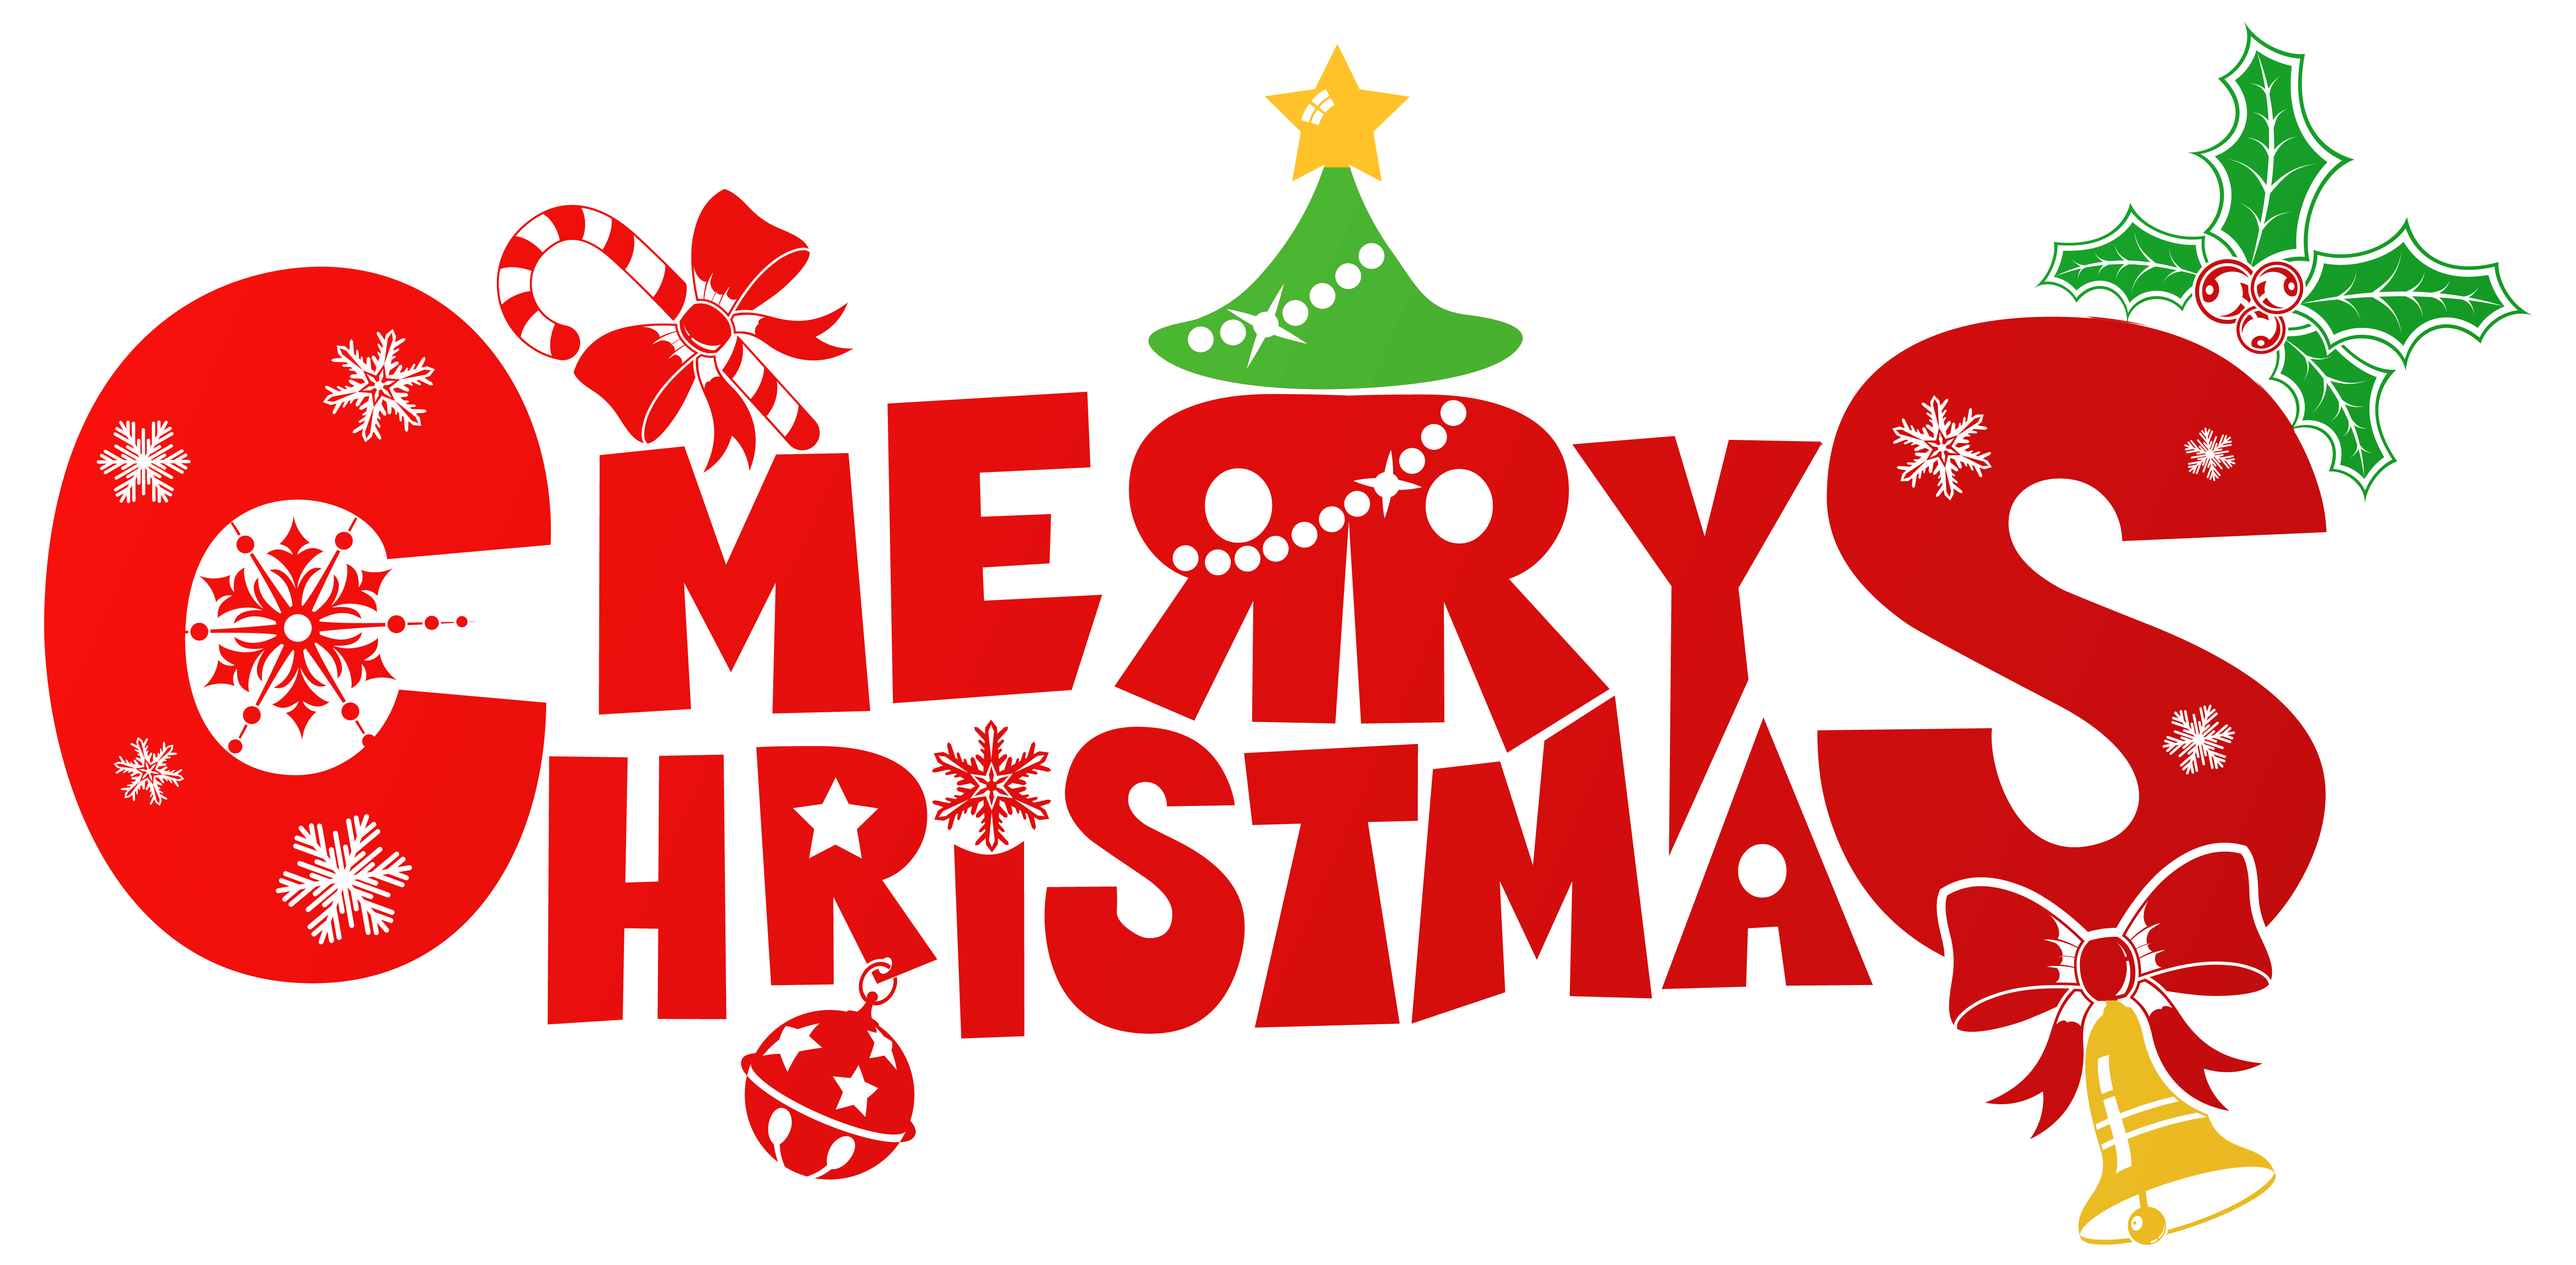 Transparent neon merry christmas. Red png clipart image